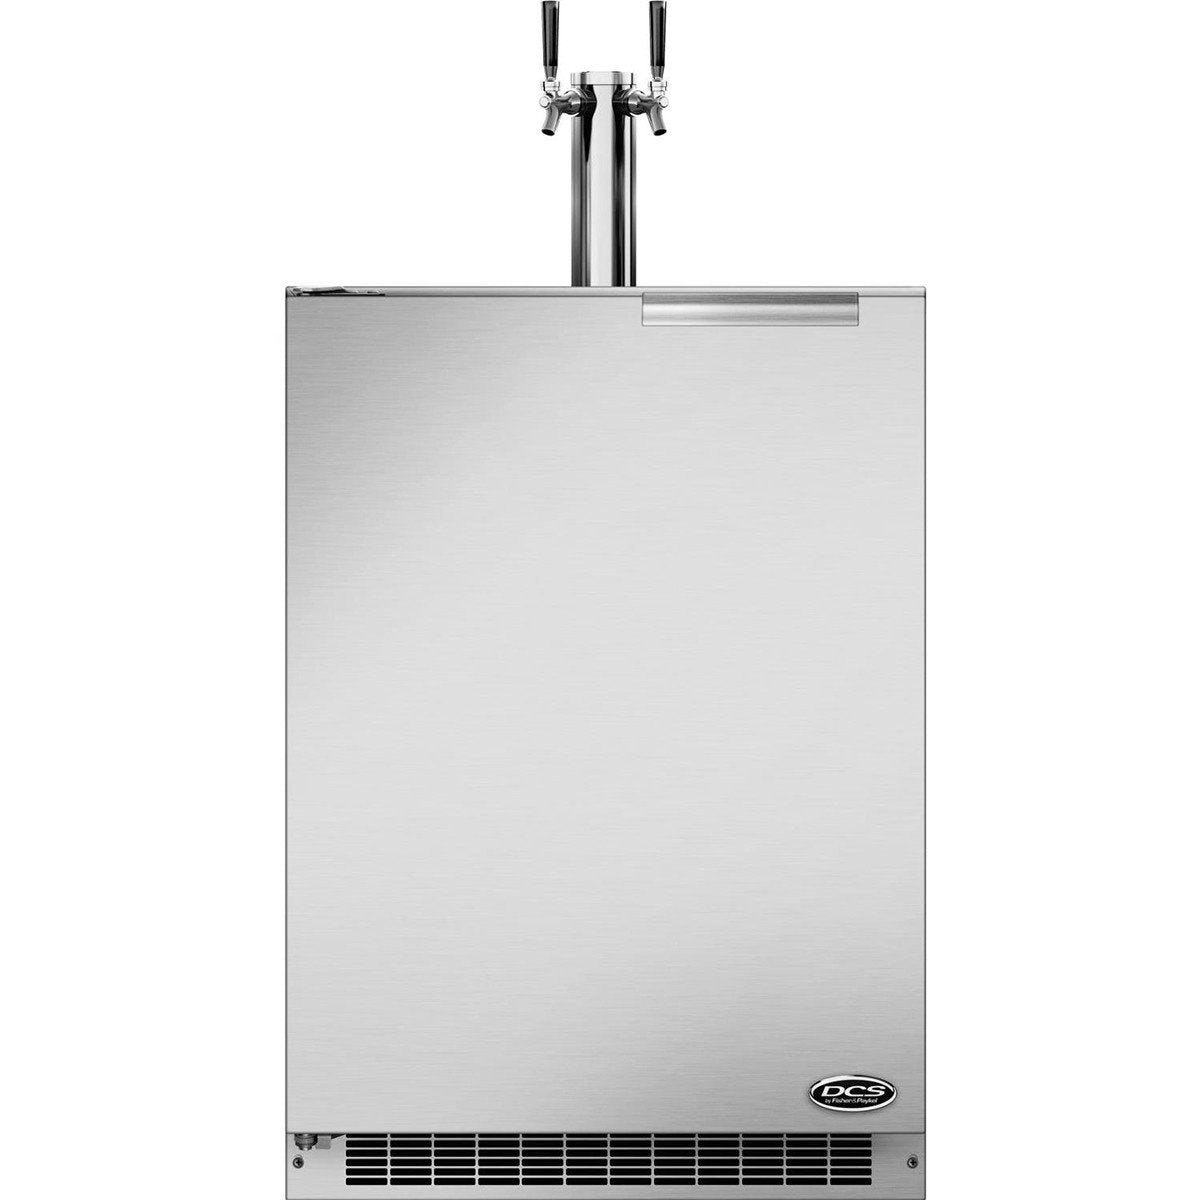 "DCS 24"" Double Tap Beer Dispenser/Kegerator, Left Hinge"